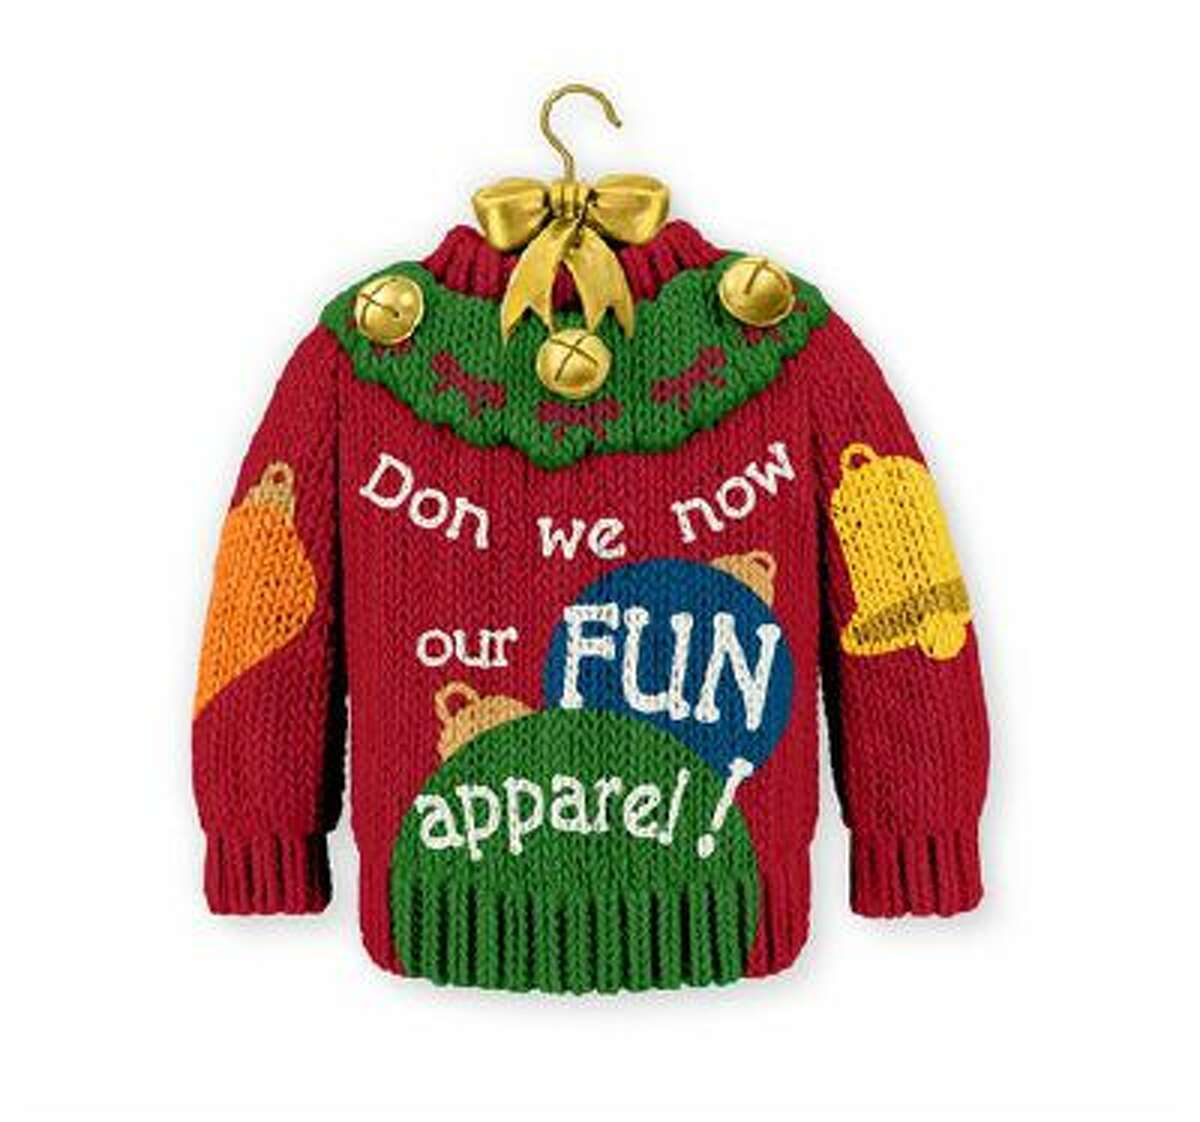 Hallmark now says it realizes it shouldn't have changed the lyrics to the classic carol.